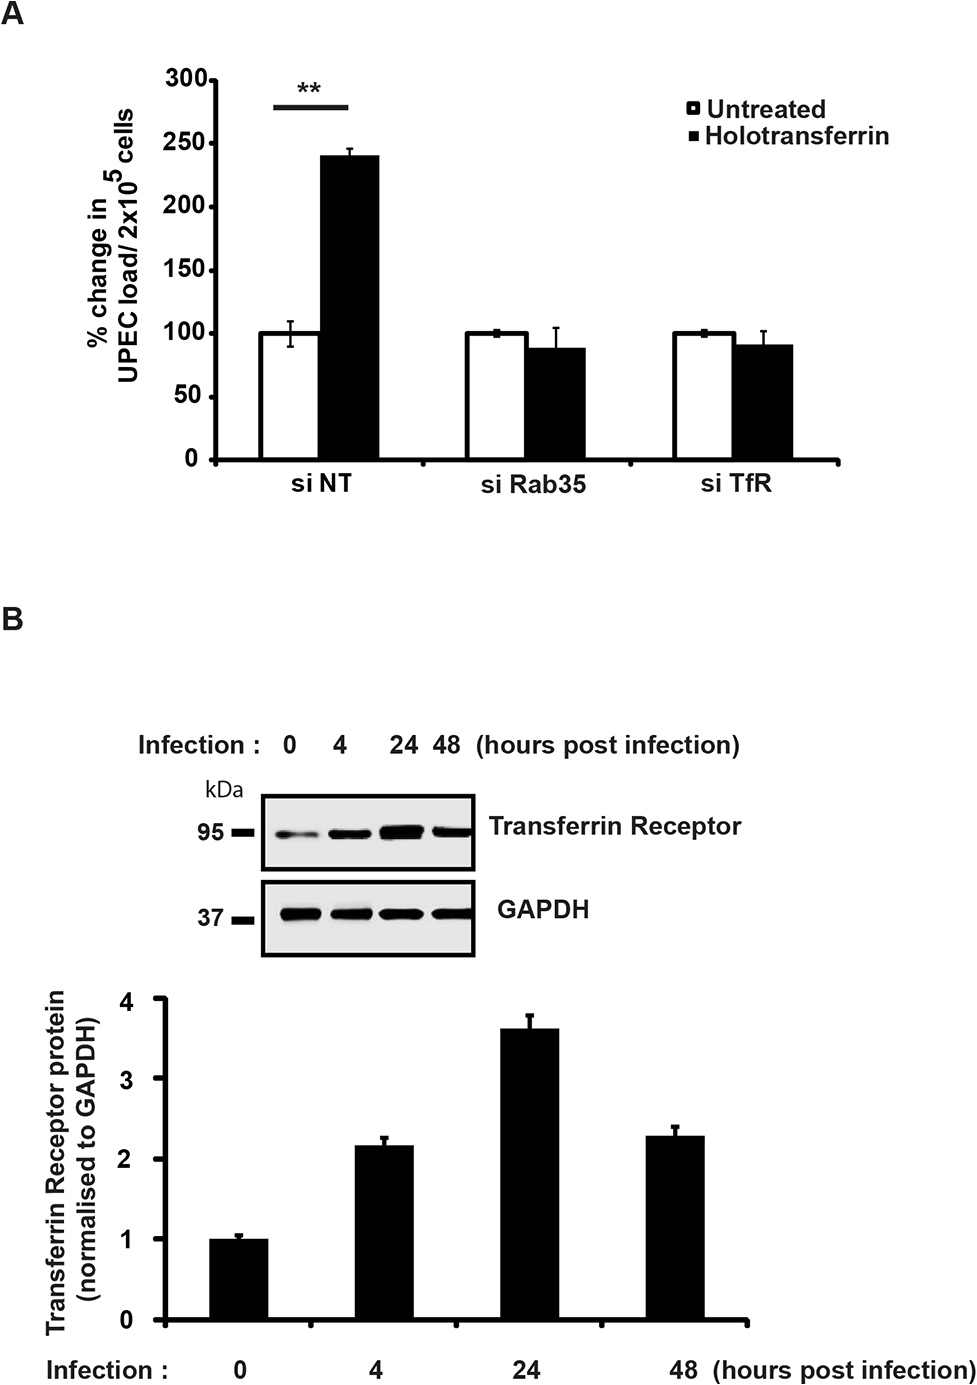 Iron supplementation is unable to support intracellular UPEC survival in the absence of Rab35 or TfR.